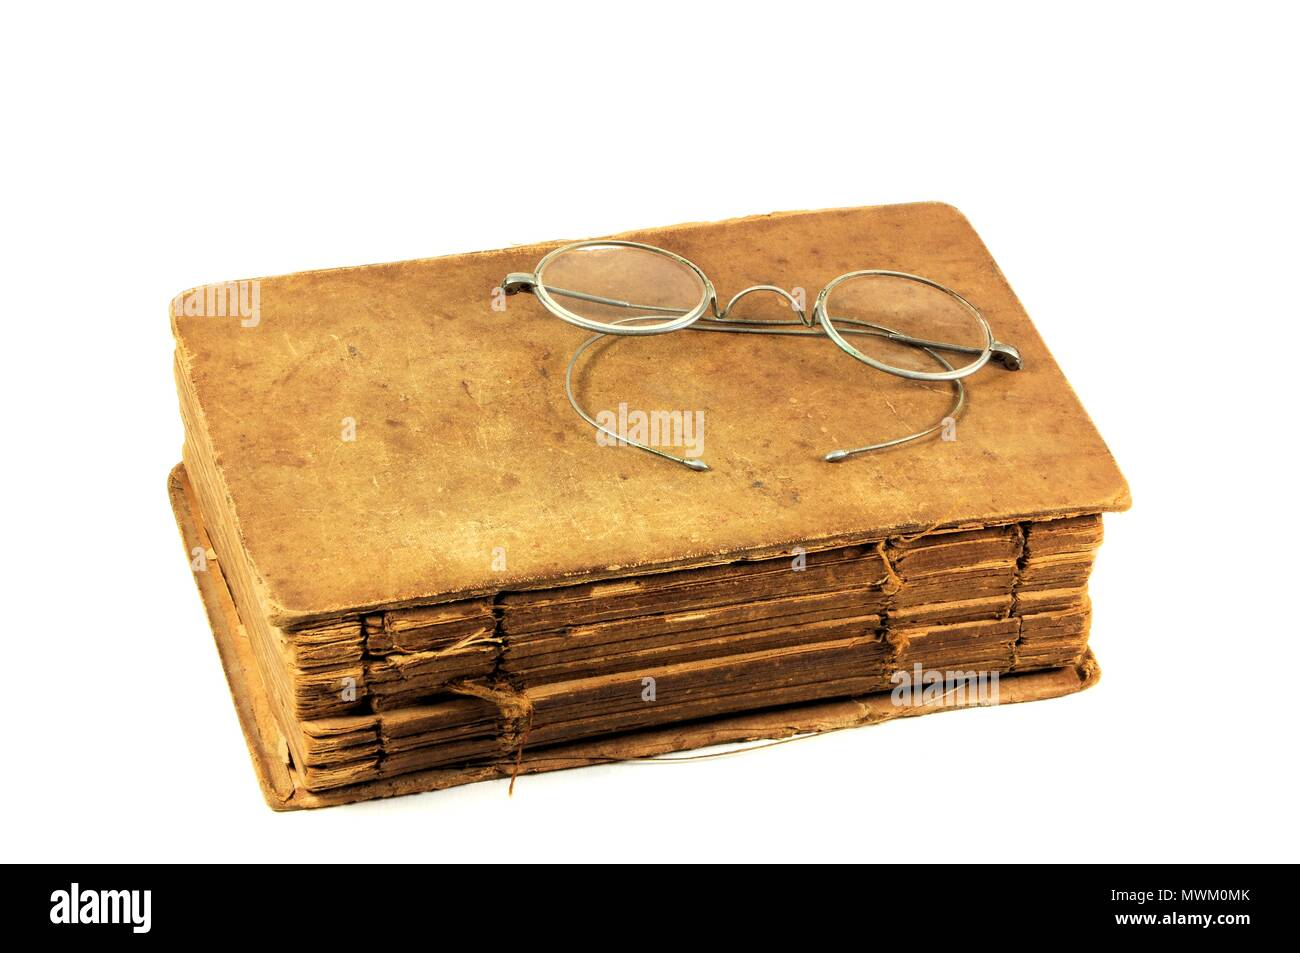 149f3e593ae Very old and worn book with antique round eyeglasses. Isolated on white  background.